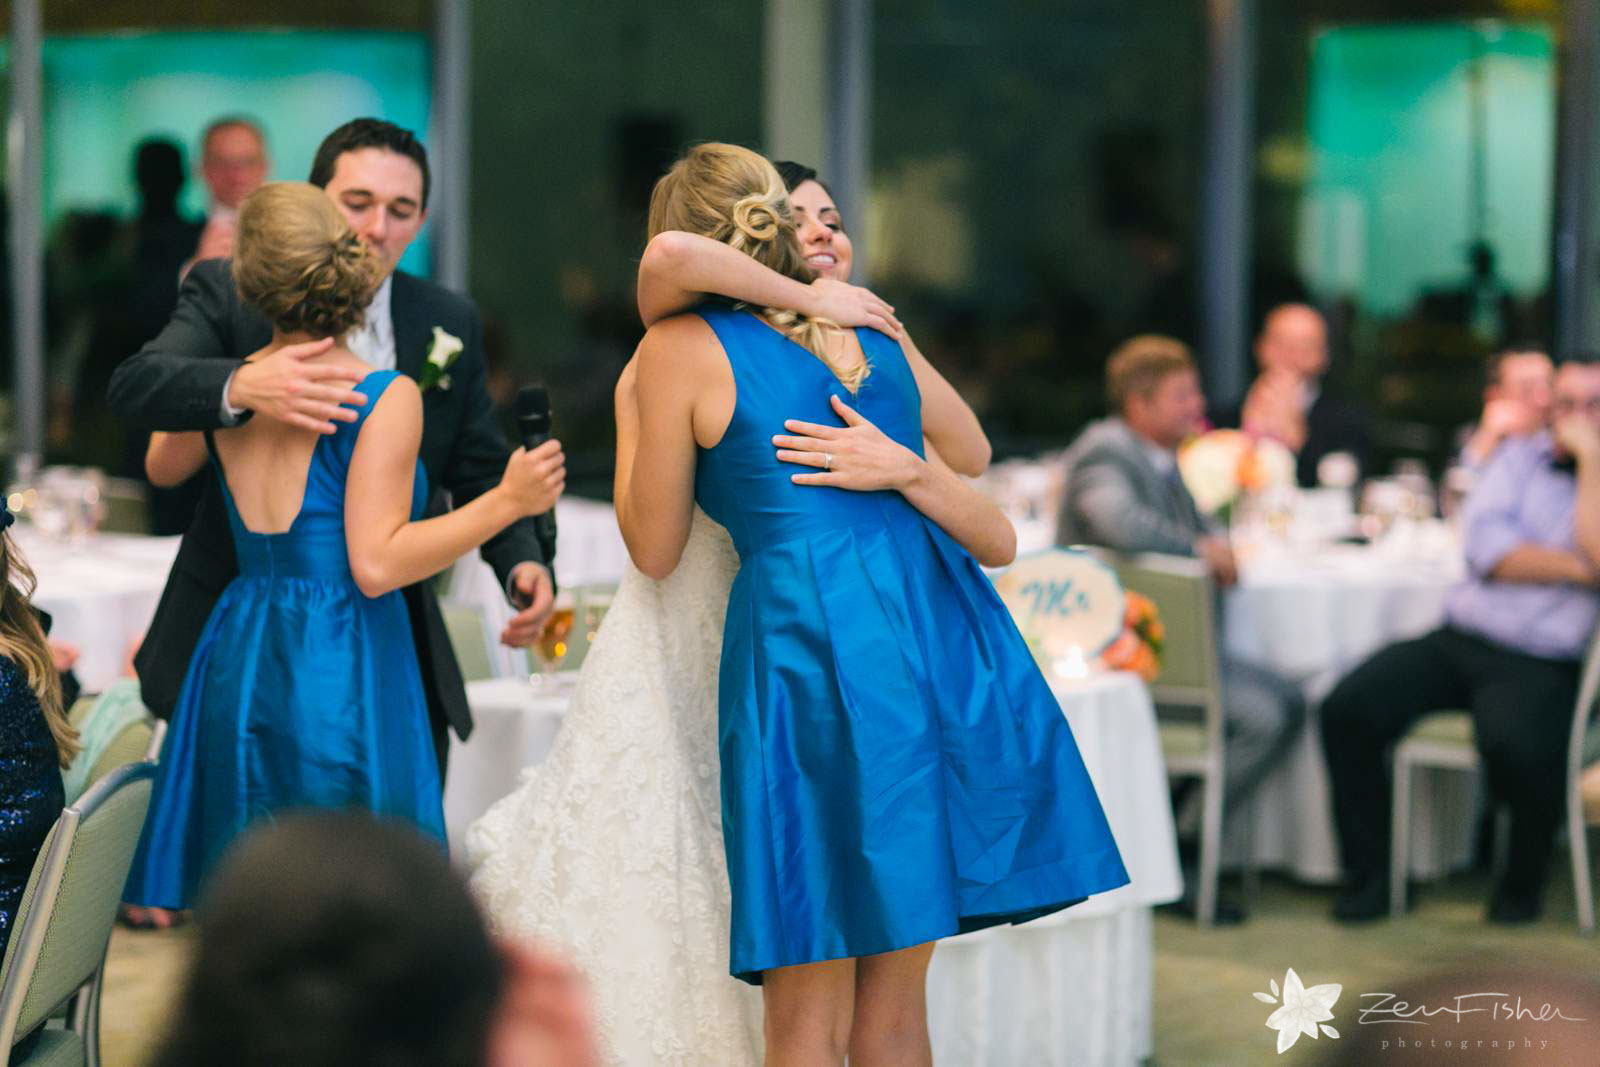 Bride and groom hugging bridesmaids after giving their toasts.